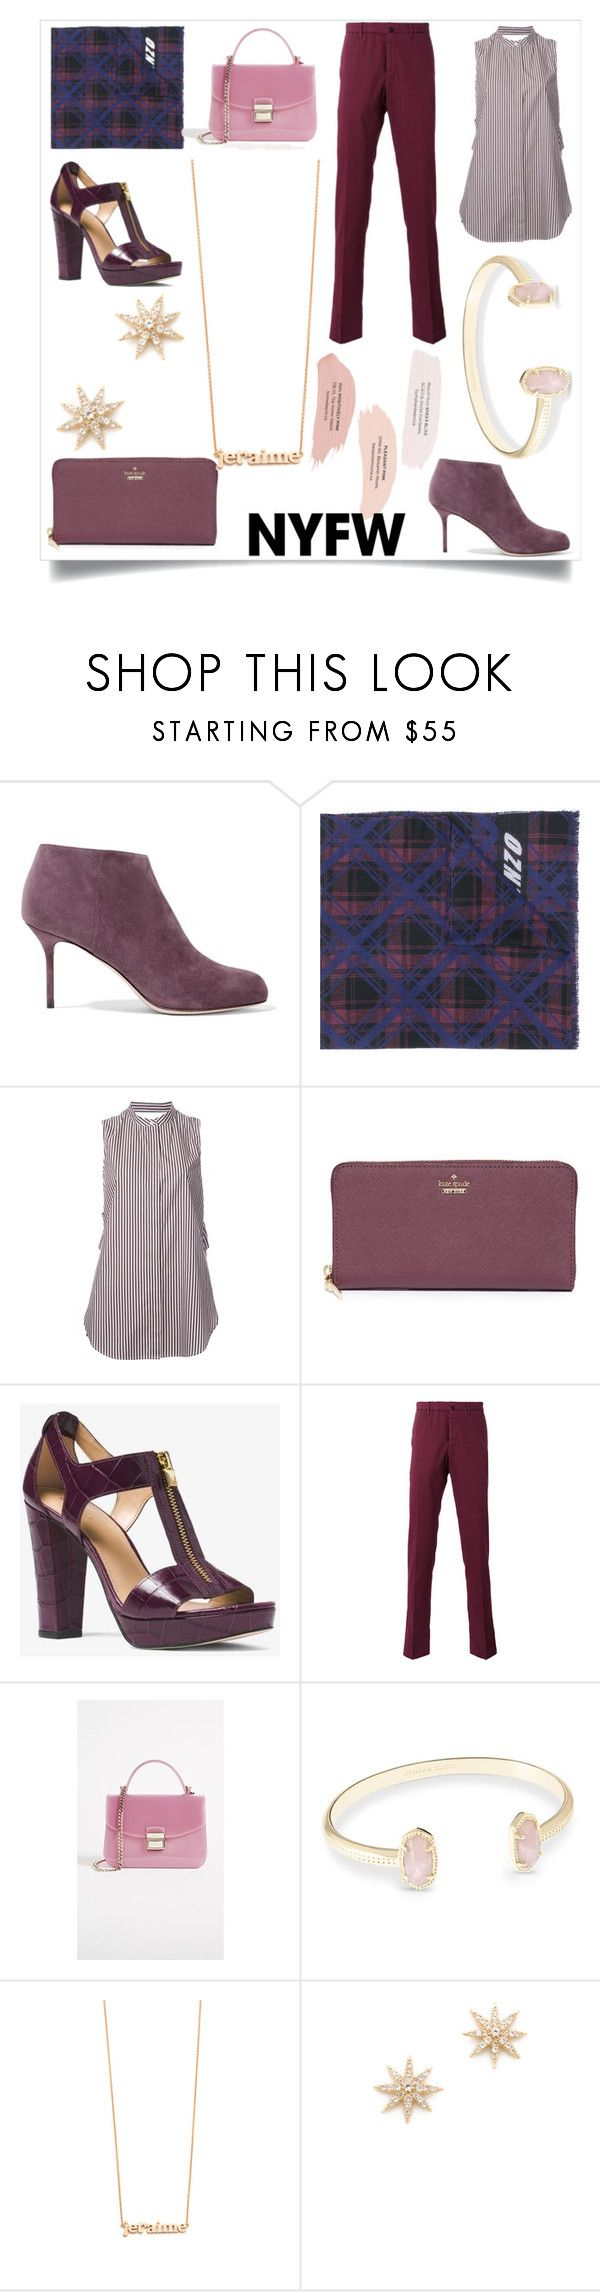 """""""Nothing haunts us like the things we didnt buy"""" by emmamegan-5678 ❤ liked on Polyvore featuring Sergio Rossi, Kenzo, 3.1 Phillip Lim, Kate Spade, MICHAEL Michael Kors, Incotex, Furla, Kendra Scott, Jennifer Meyer Jewelry and Elizabeth and James"""